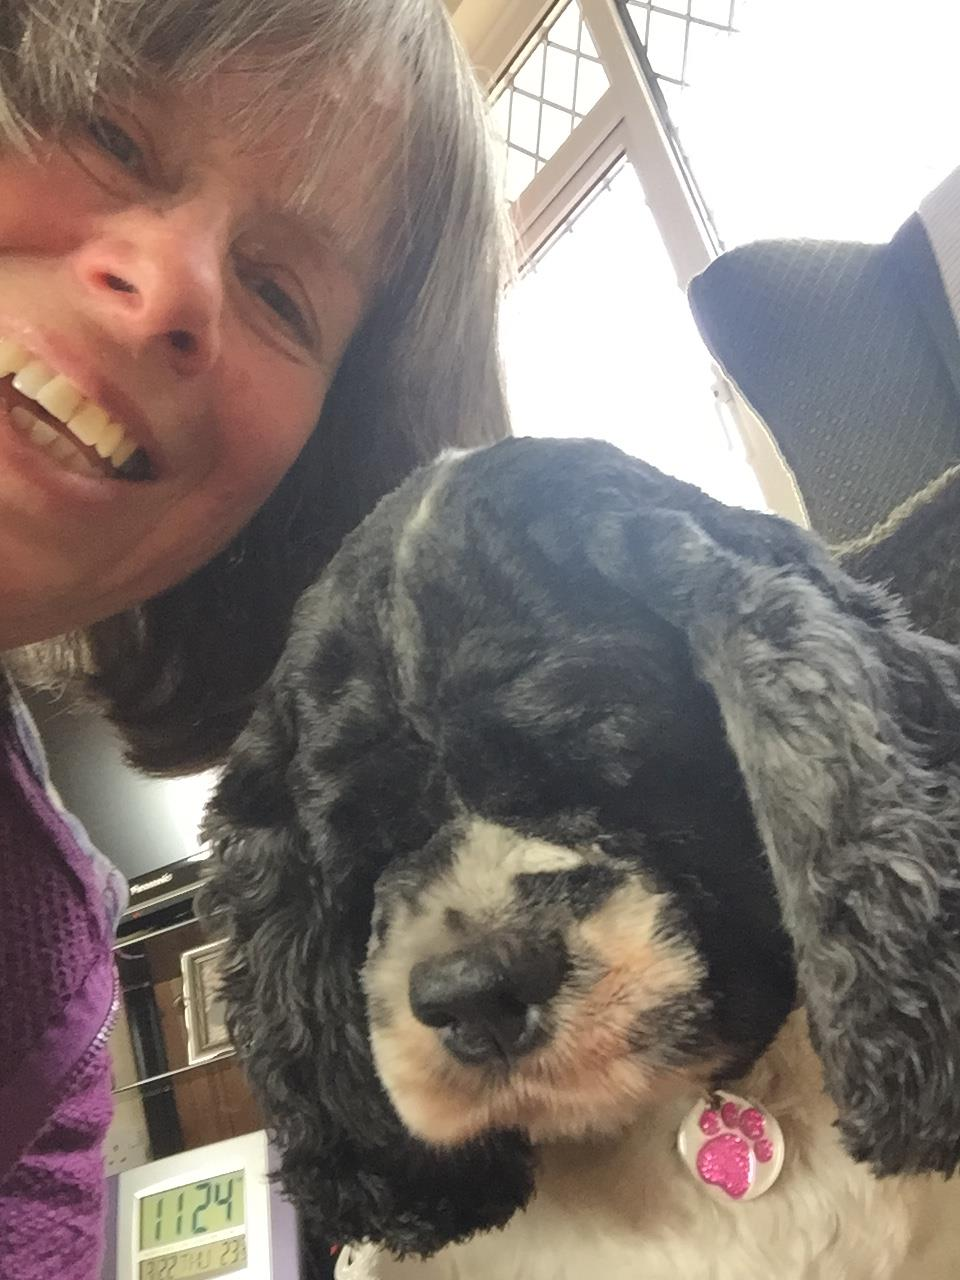 Welcome Esme  - Esme is our newest carer. Esme hasnt wasted any time, she is already looking after her first dog, Ava (seen here) and has fallen in love.